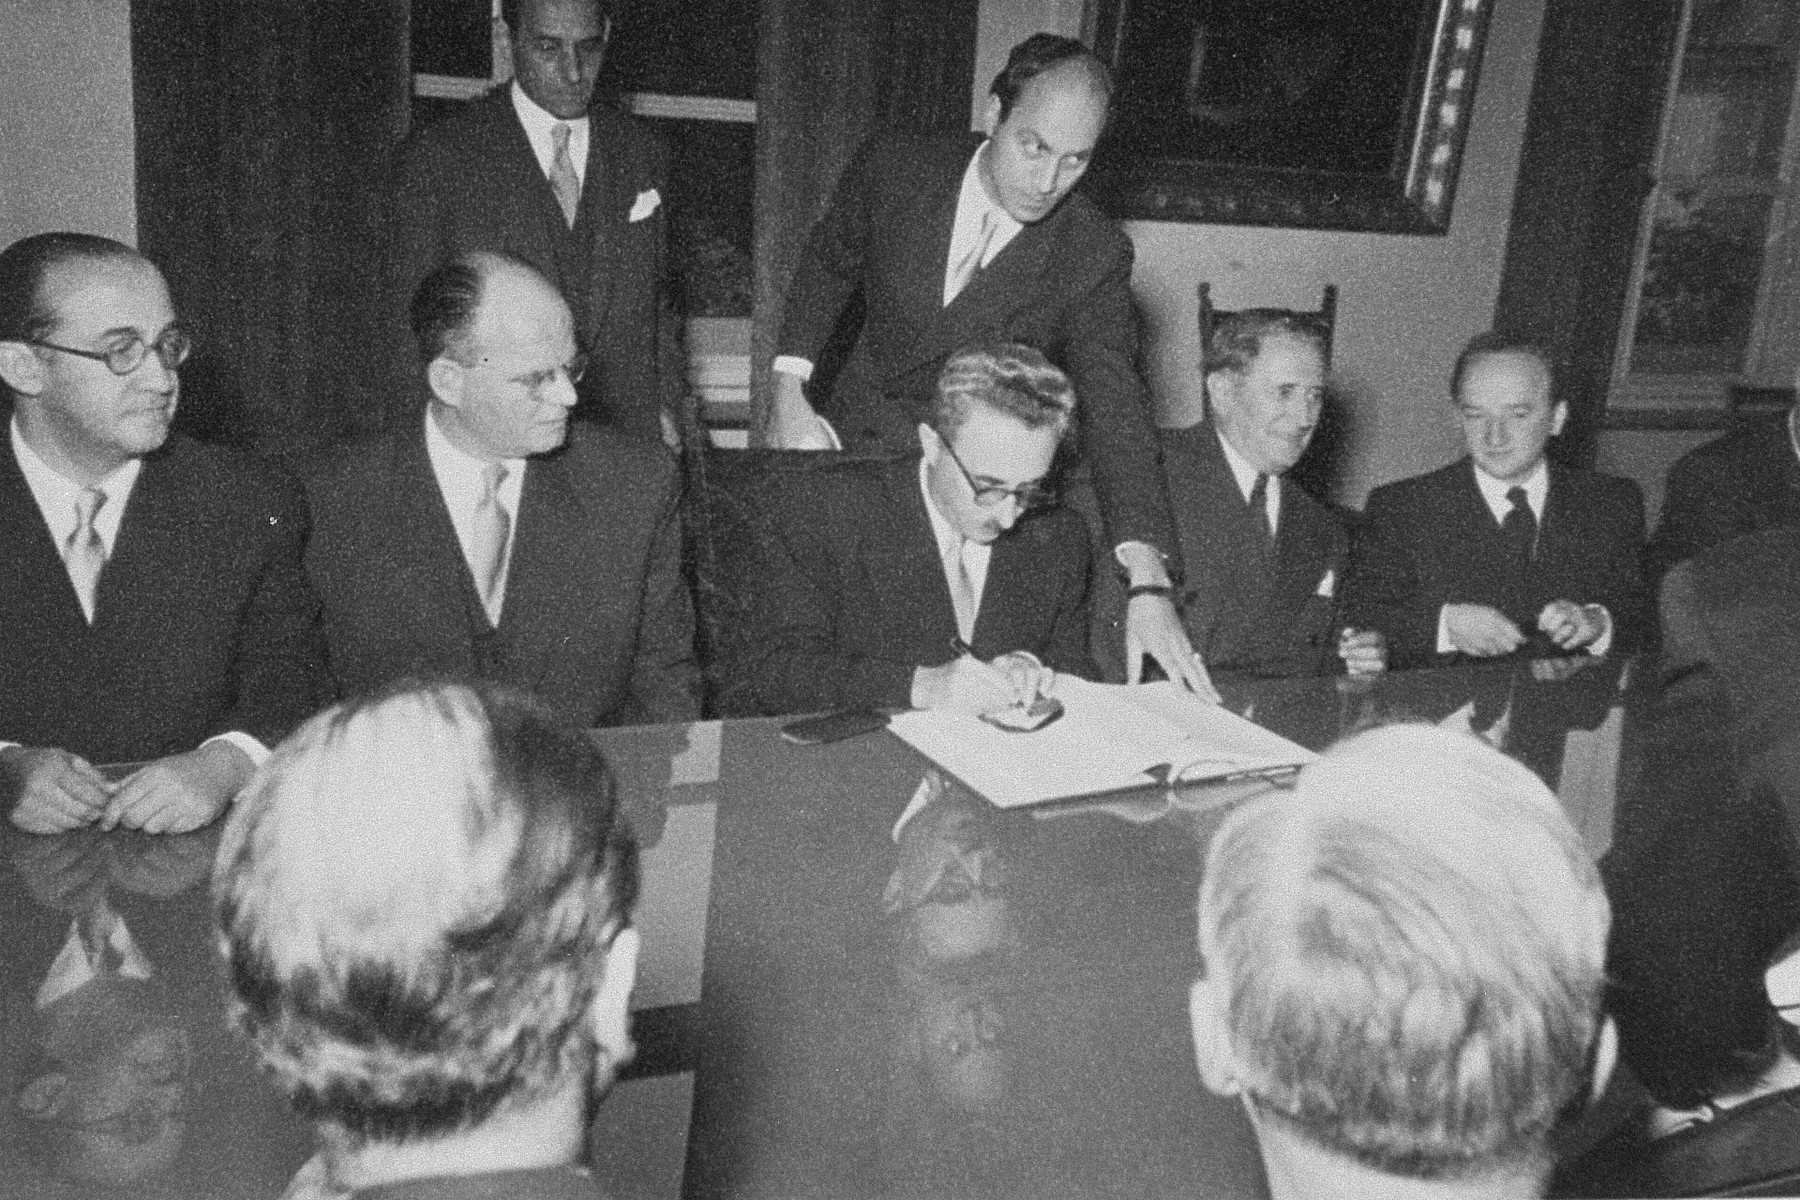 Israeli Foreign Minister Moshe Sharett signs the Reparations Agreement between the German Federal Republic, the State of Israel, and the Conference on Jewish Material Claims.    Seated from left to right are: Felix Shinnar, Giora Josephthal, Moshe Sharett, Nahum Goldmann, and Benjamin Ferencz.